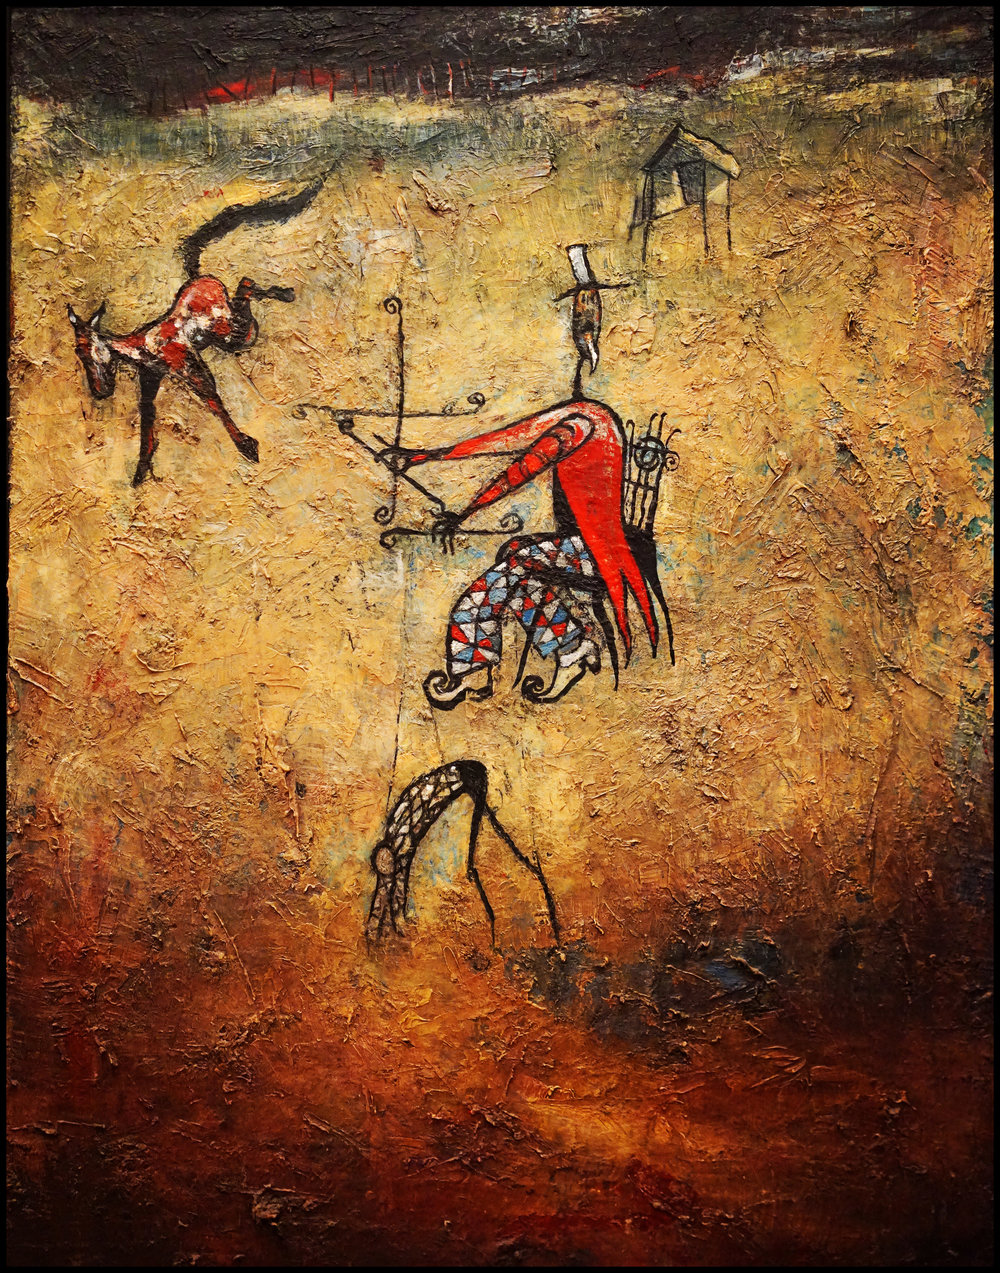 The Puppeteer, Oil on Canvas, 24x18 in, Robert Hite, 2000, sold